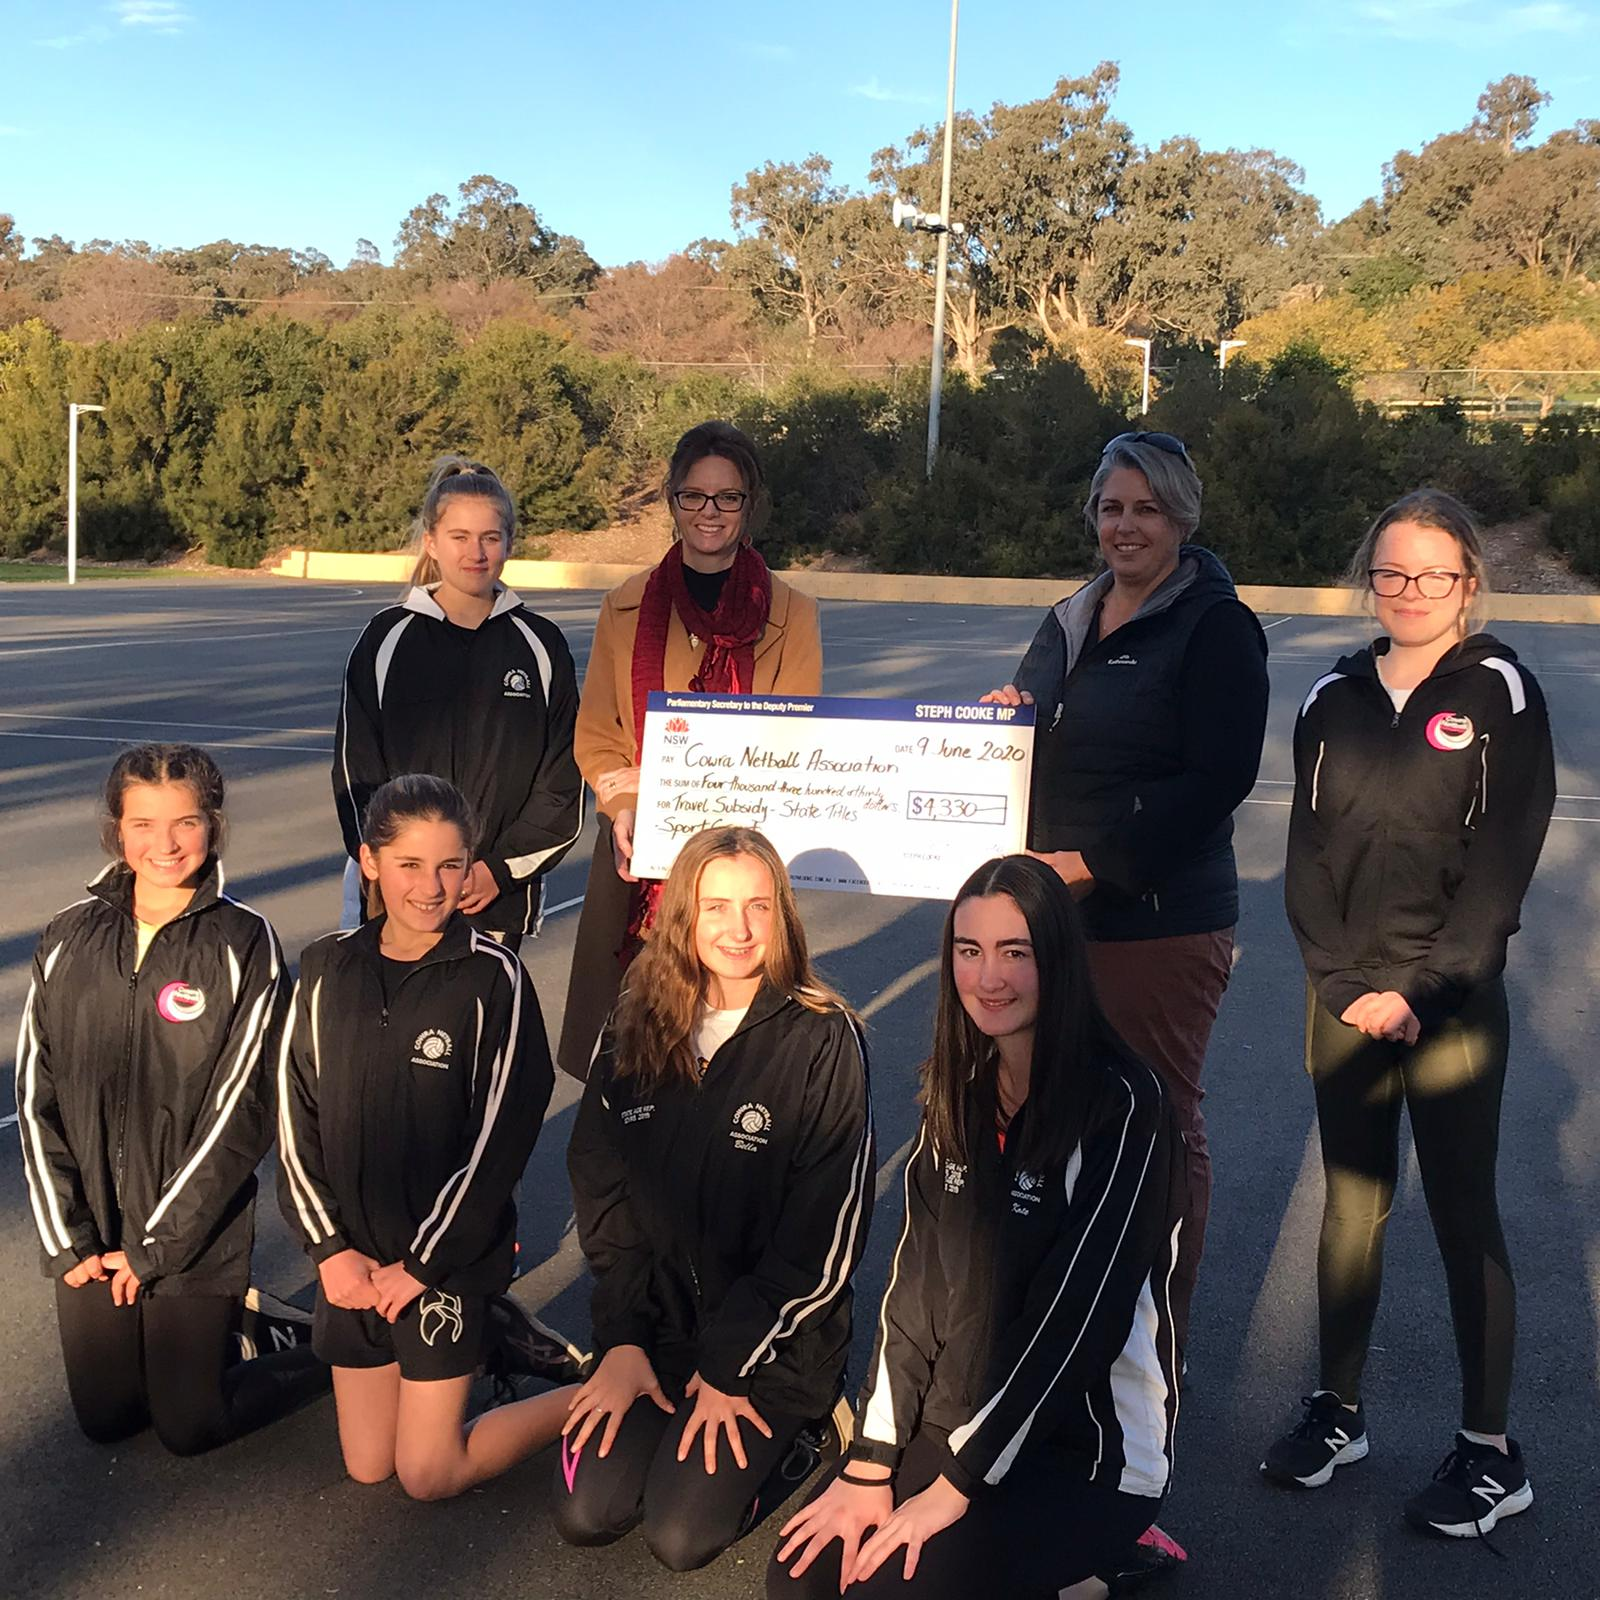 Members of the Cowra Netball Association and Steph Cooke MP holding a large cheque and standing on a netball court. There are six members of the club with Steph, all of them wear black uniforms.